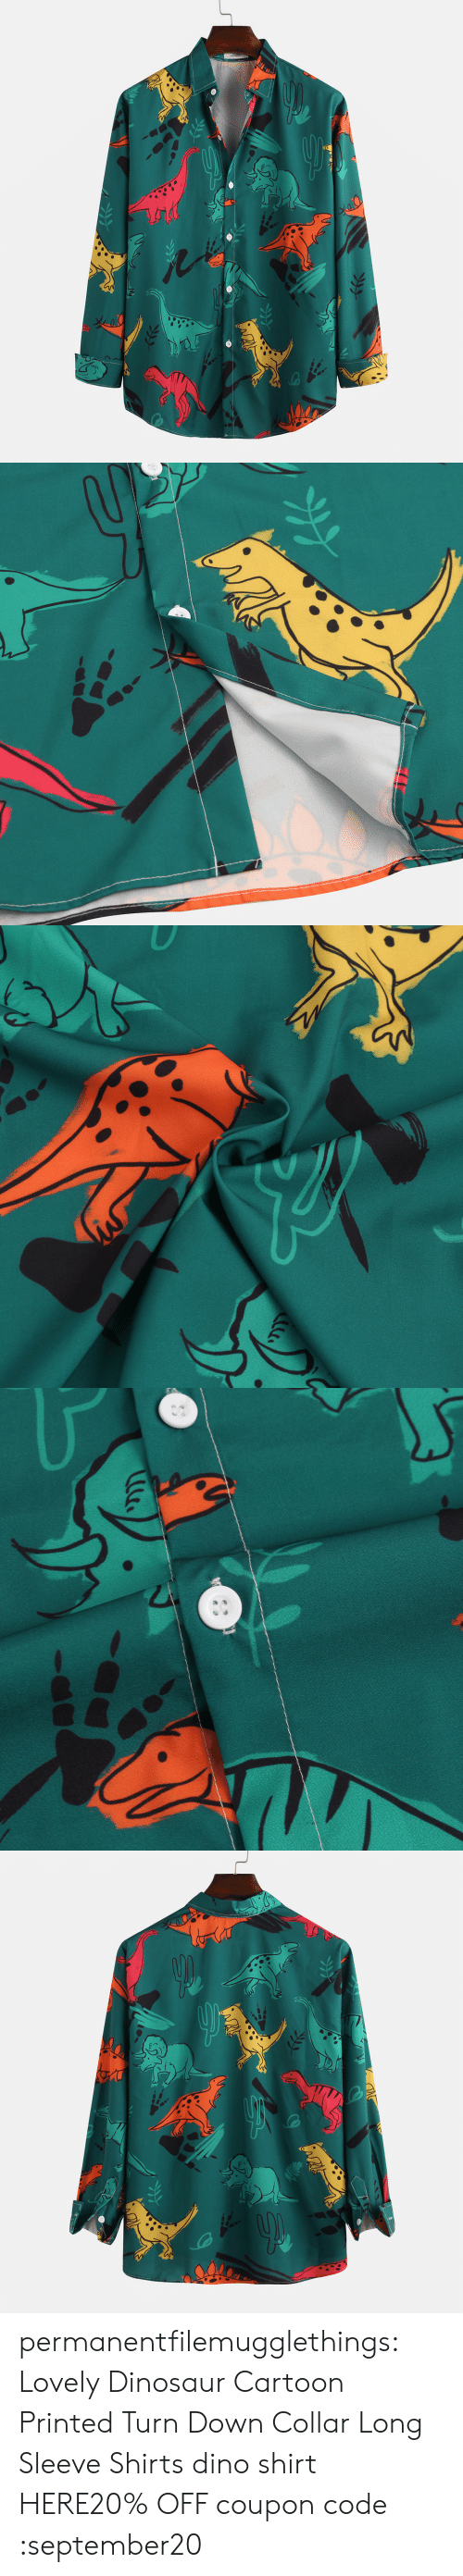 Dinosaur, Tumblr, and Blog: permanentfilemugglethings:  Lovely Dinosaur Cartoon Printed Turn Down Collar Long Sleeve Shirts dino shirt HERE20% OFF coupon code :september20